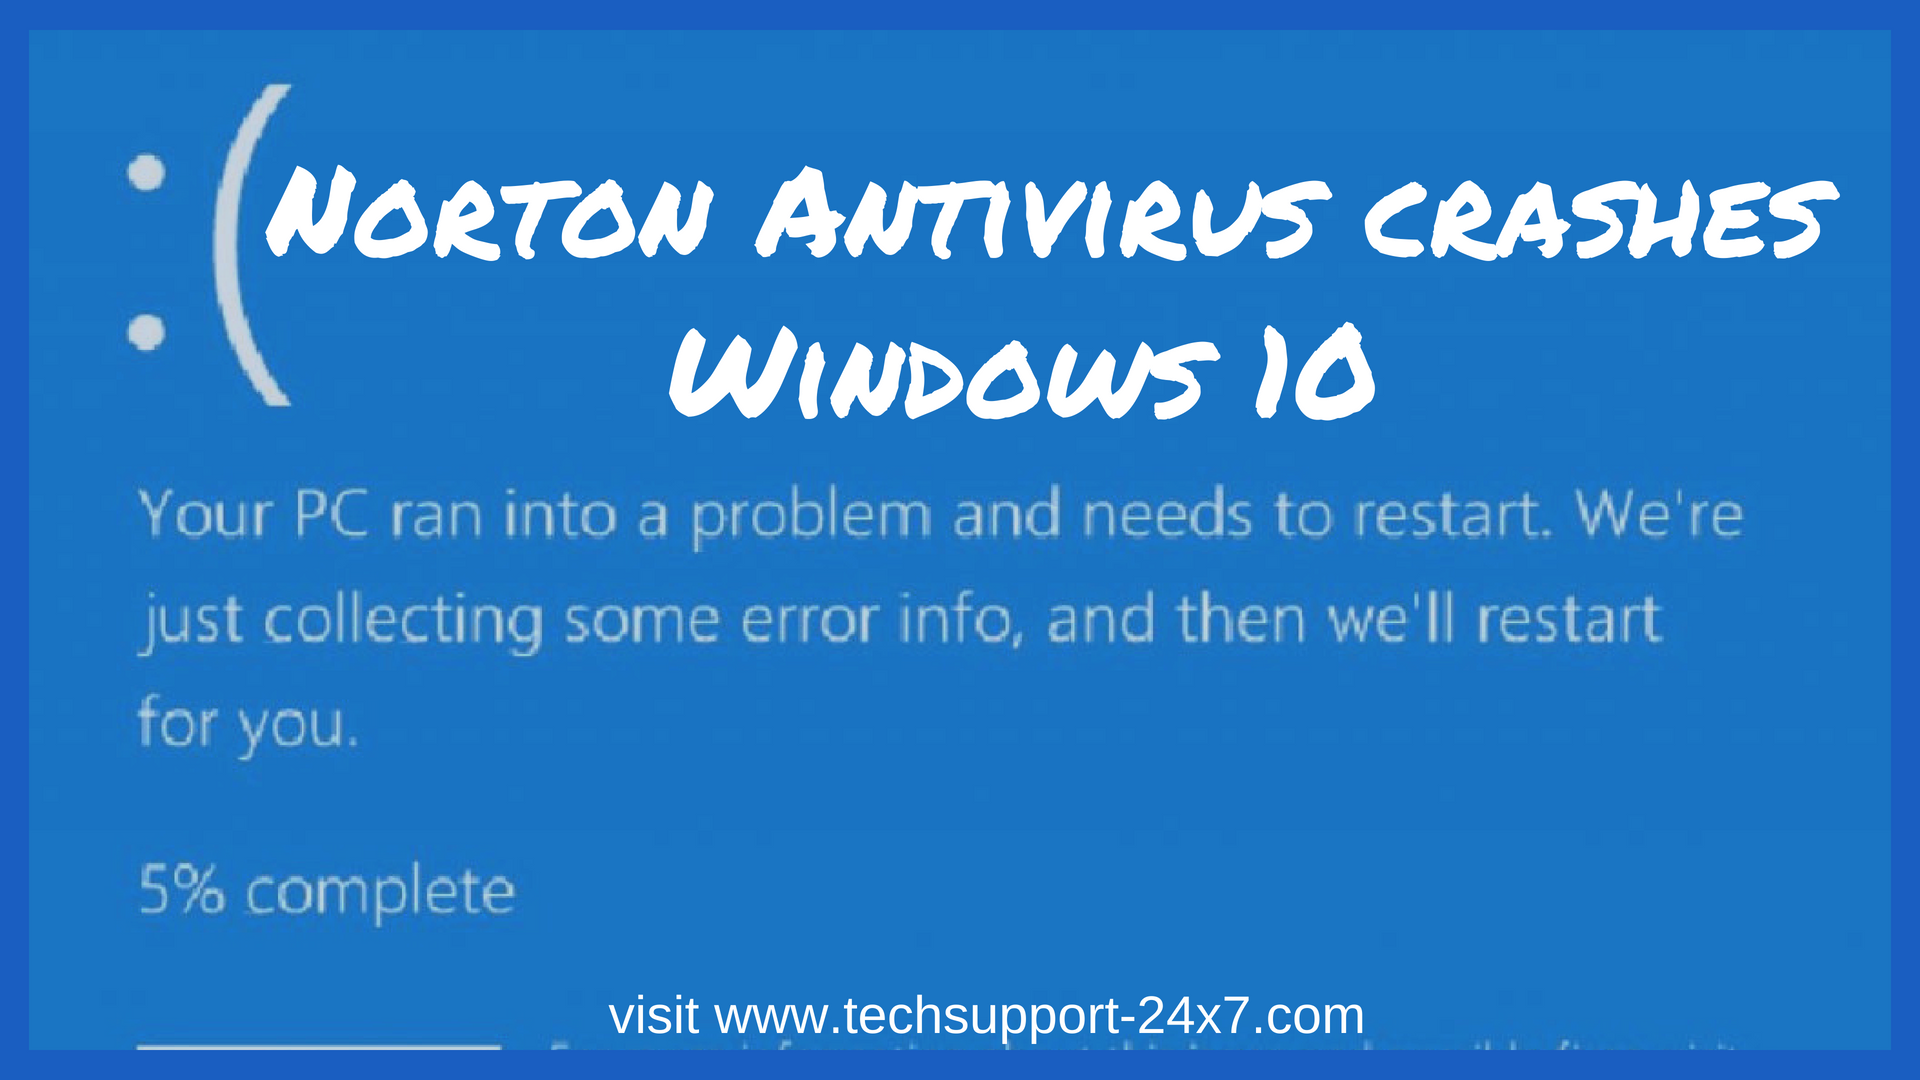 Norton Antivirus crashes Windows 10